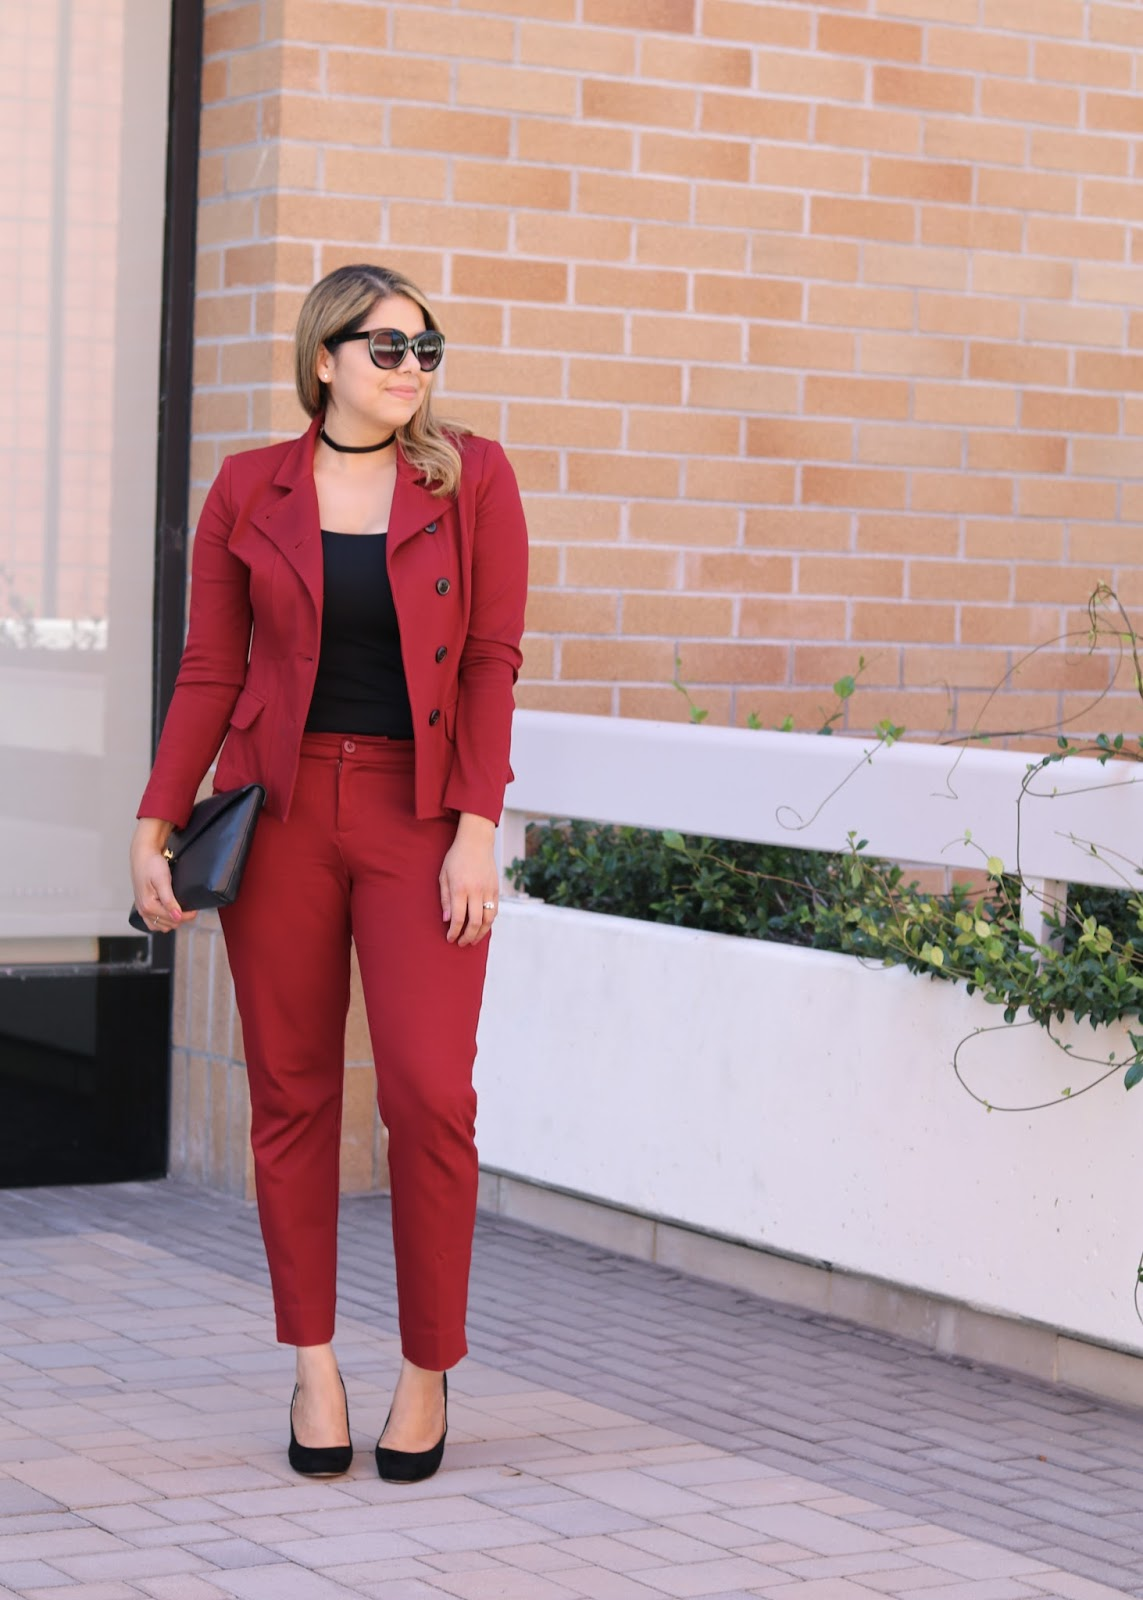 fall 2016 fashion, san diego fashion blogger, san diego fall fashion, san diego style blogger, black choker and burgundy suit